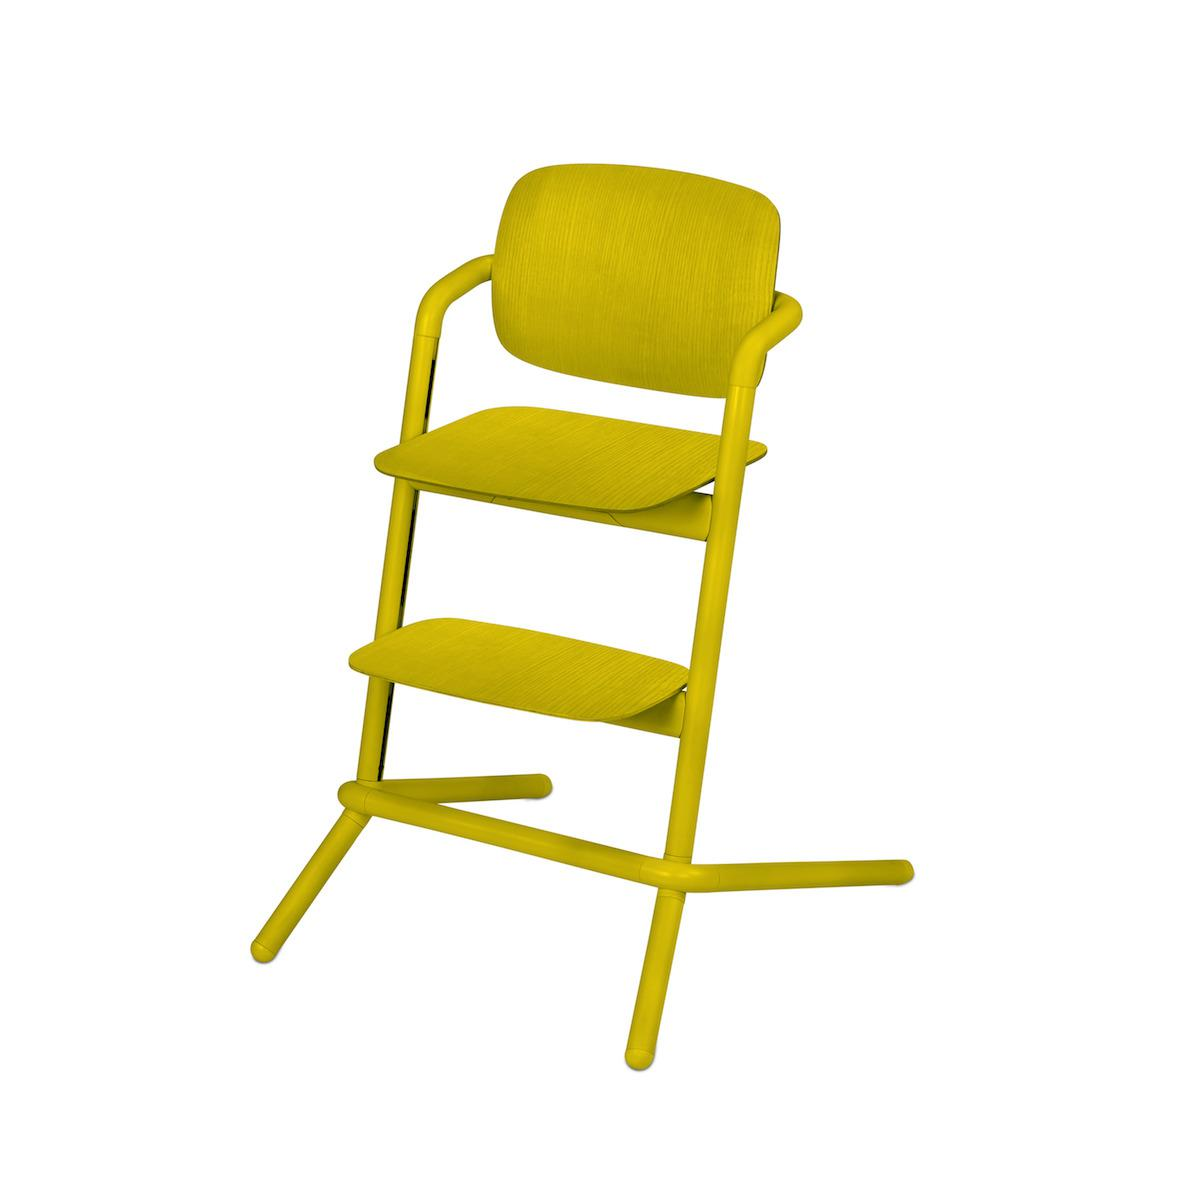 Chaise haute bois LEMO Cybex canary yellow-yellow